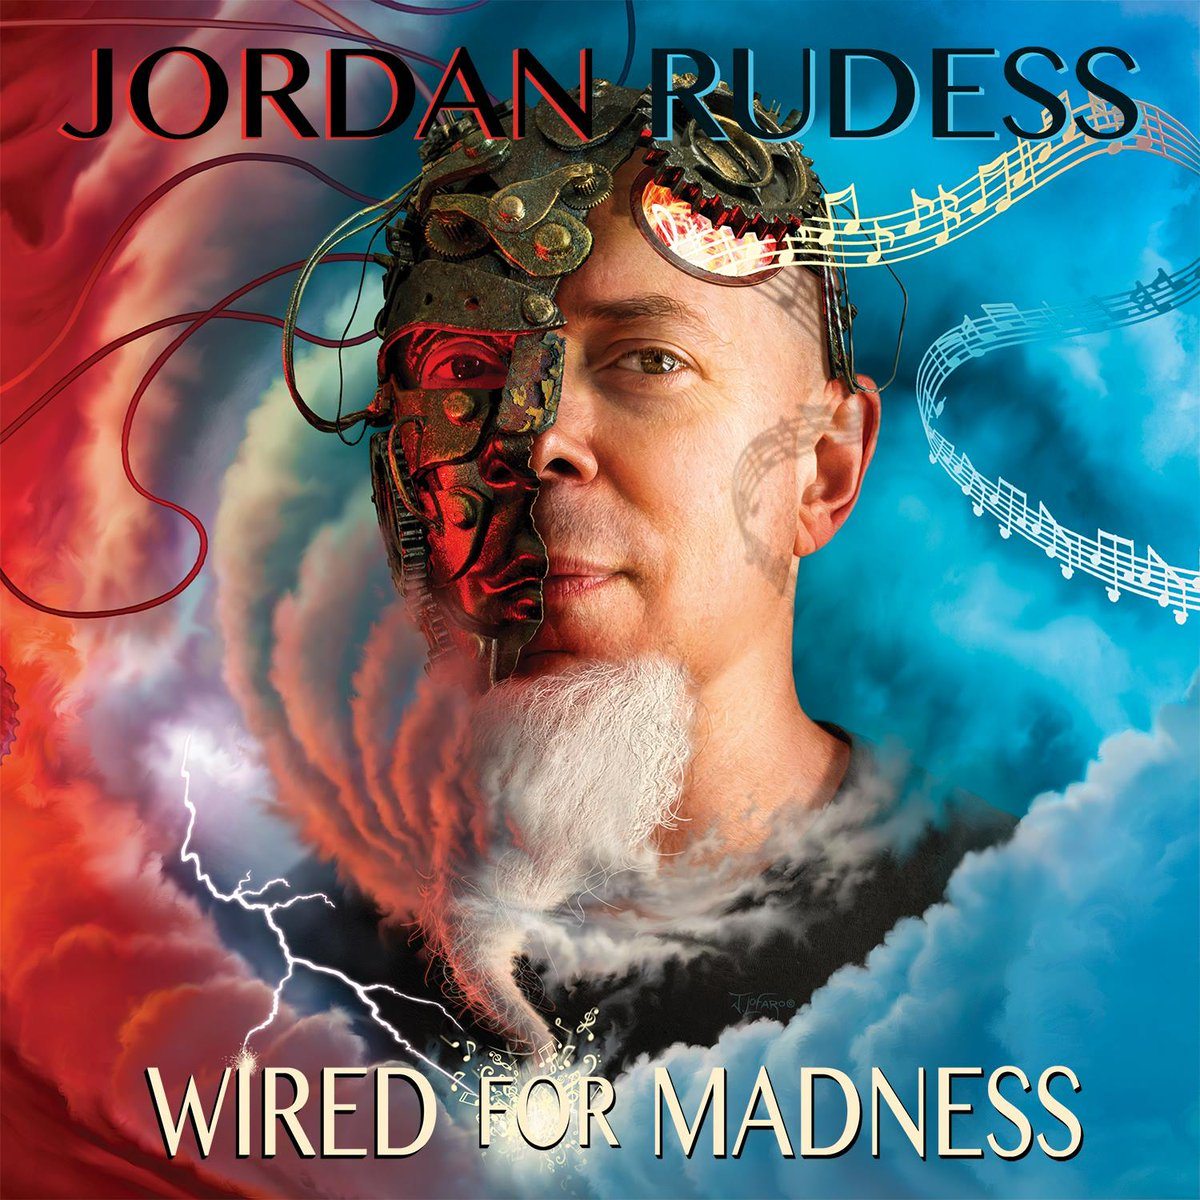 Jordan Rudess - Wired For Madness (2019)